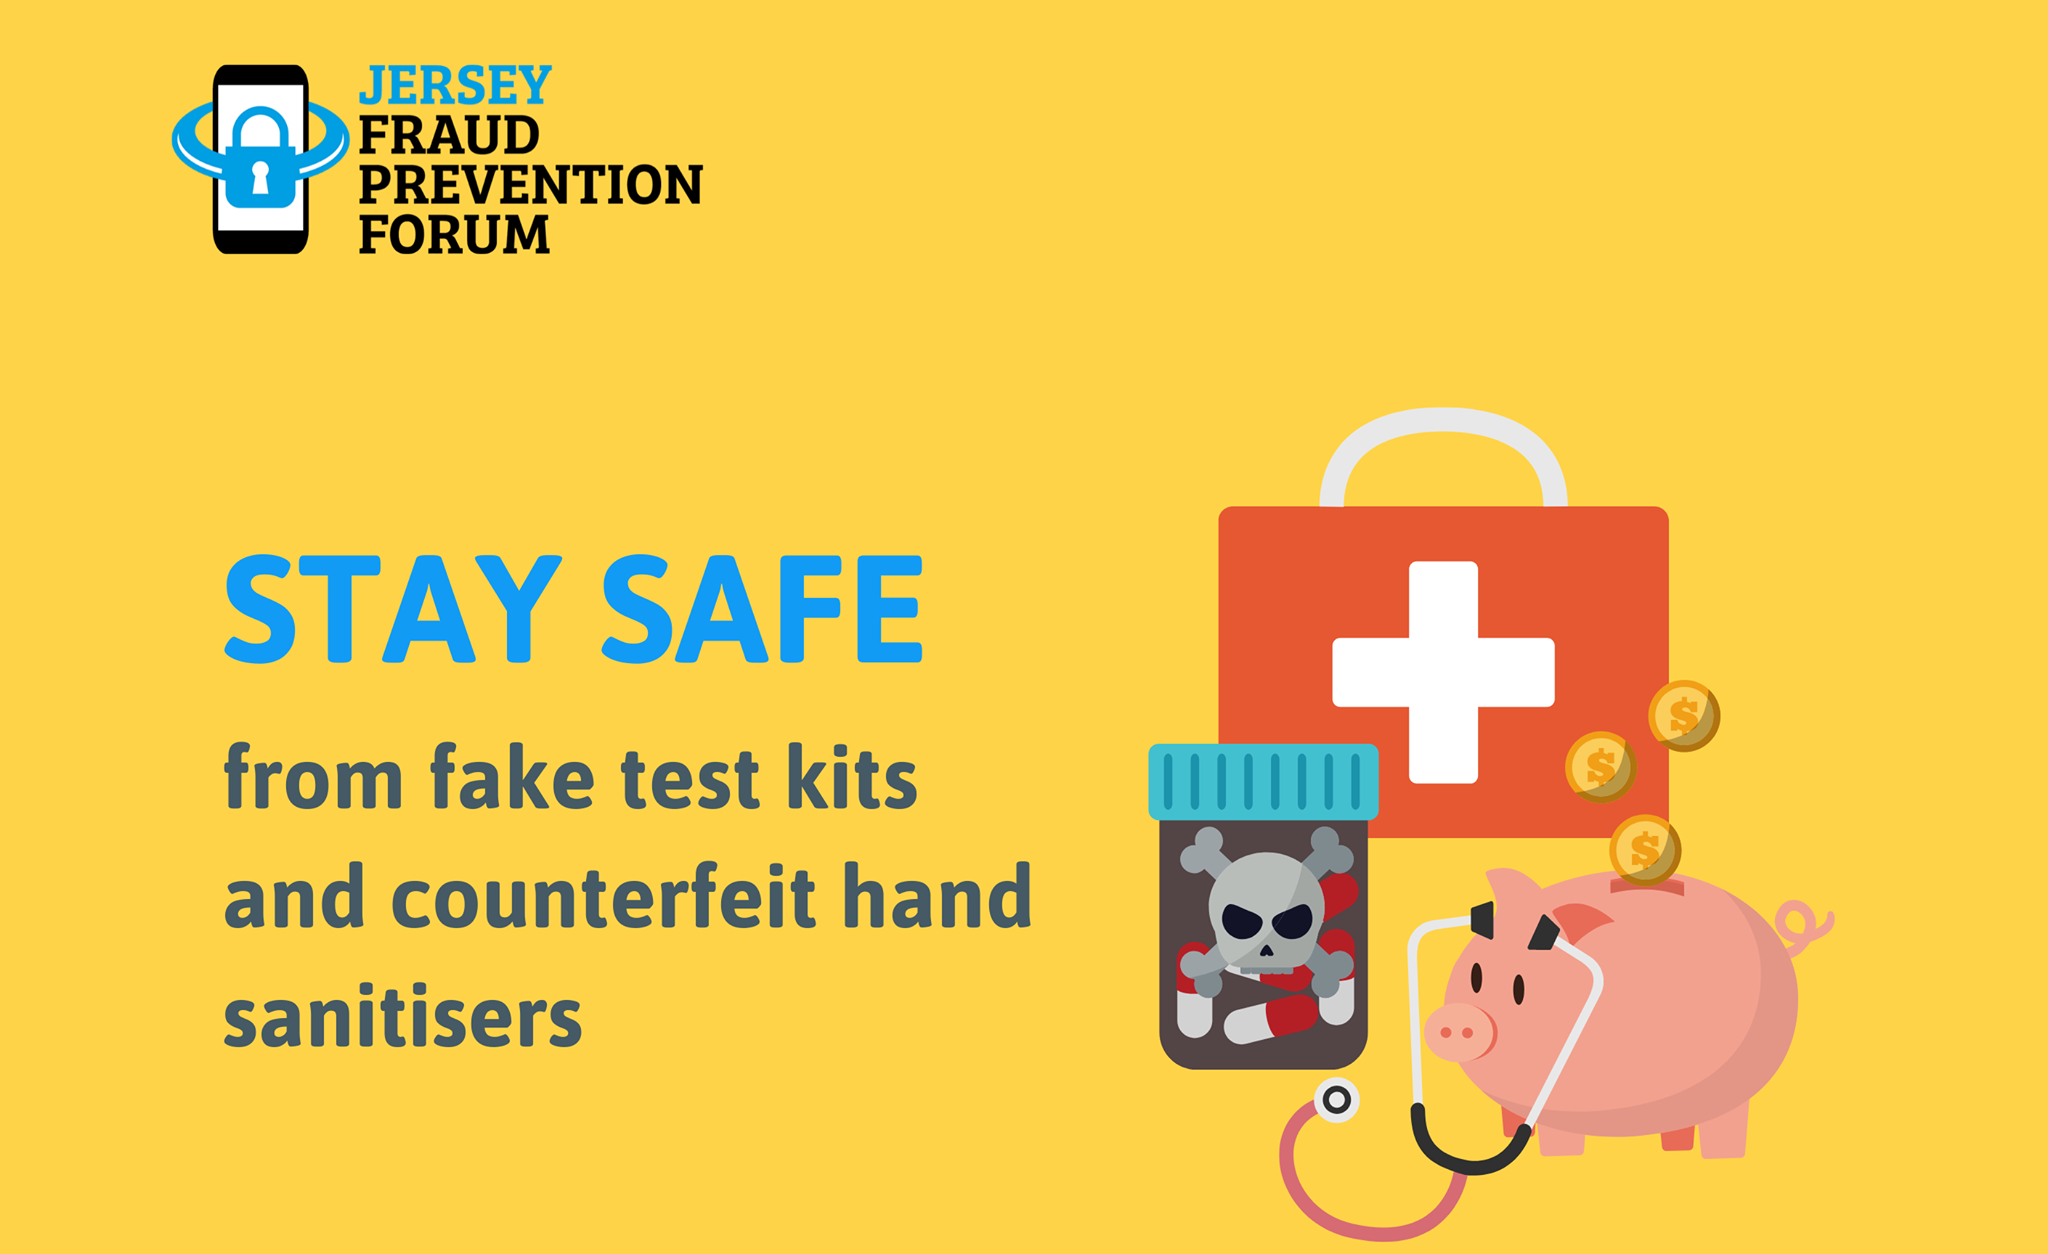 Warning following reports of fake COVID-19 testing kits and counterfeit hand sanitisers